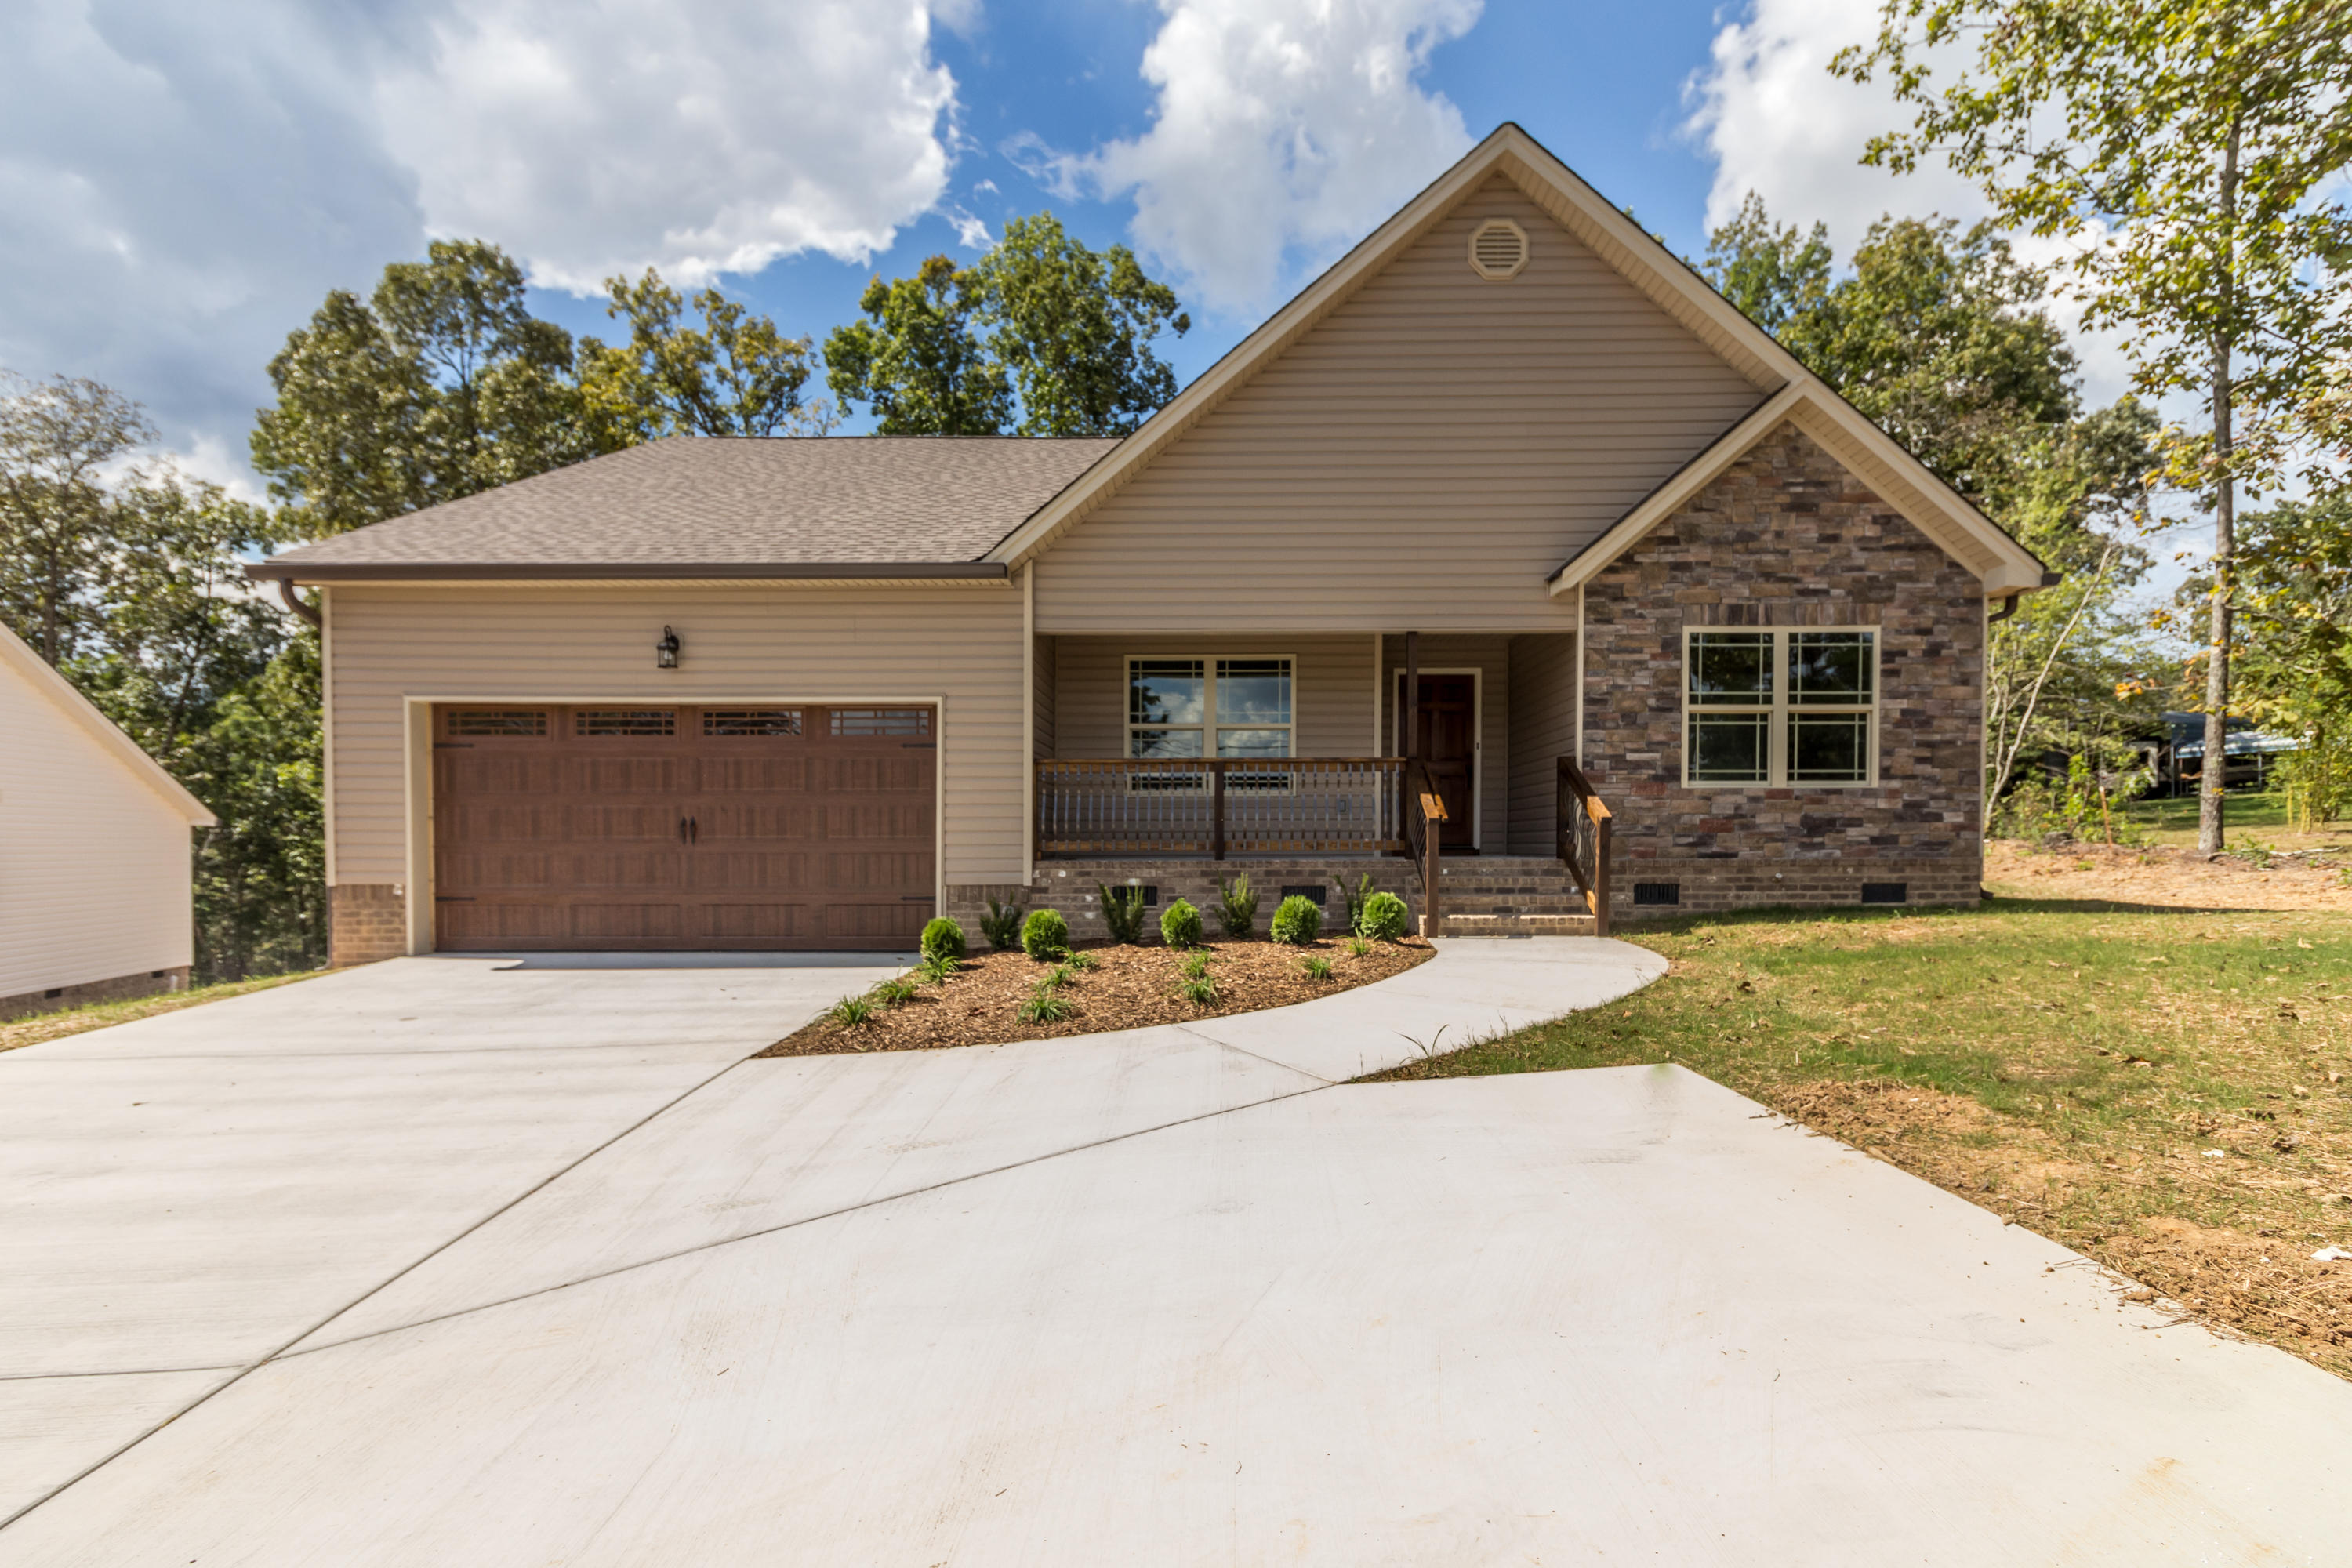 7488 Grasshopper Rd, Georgetown, TN 37336